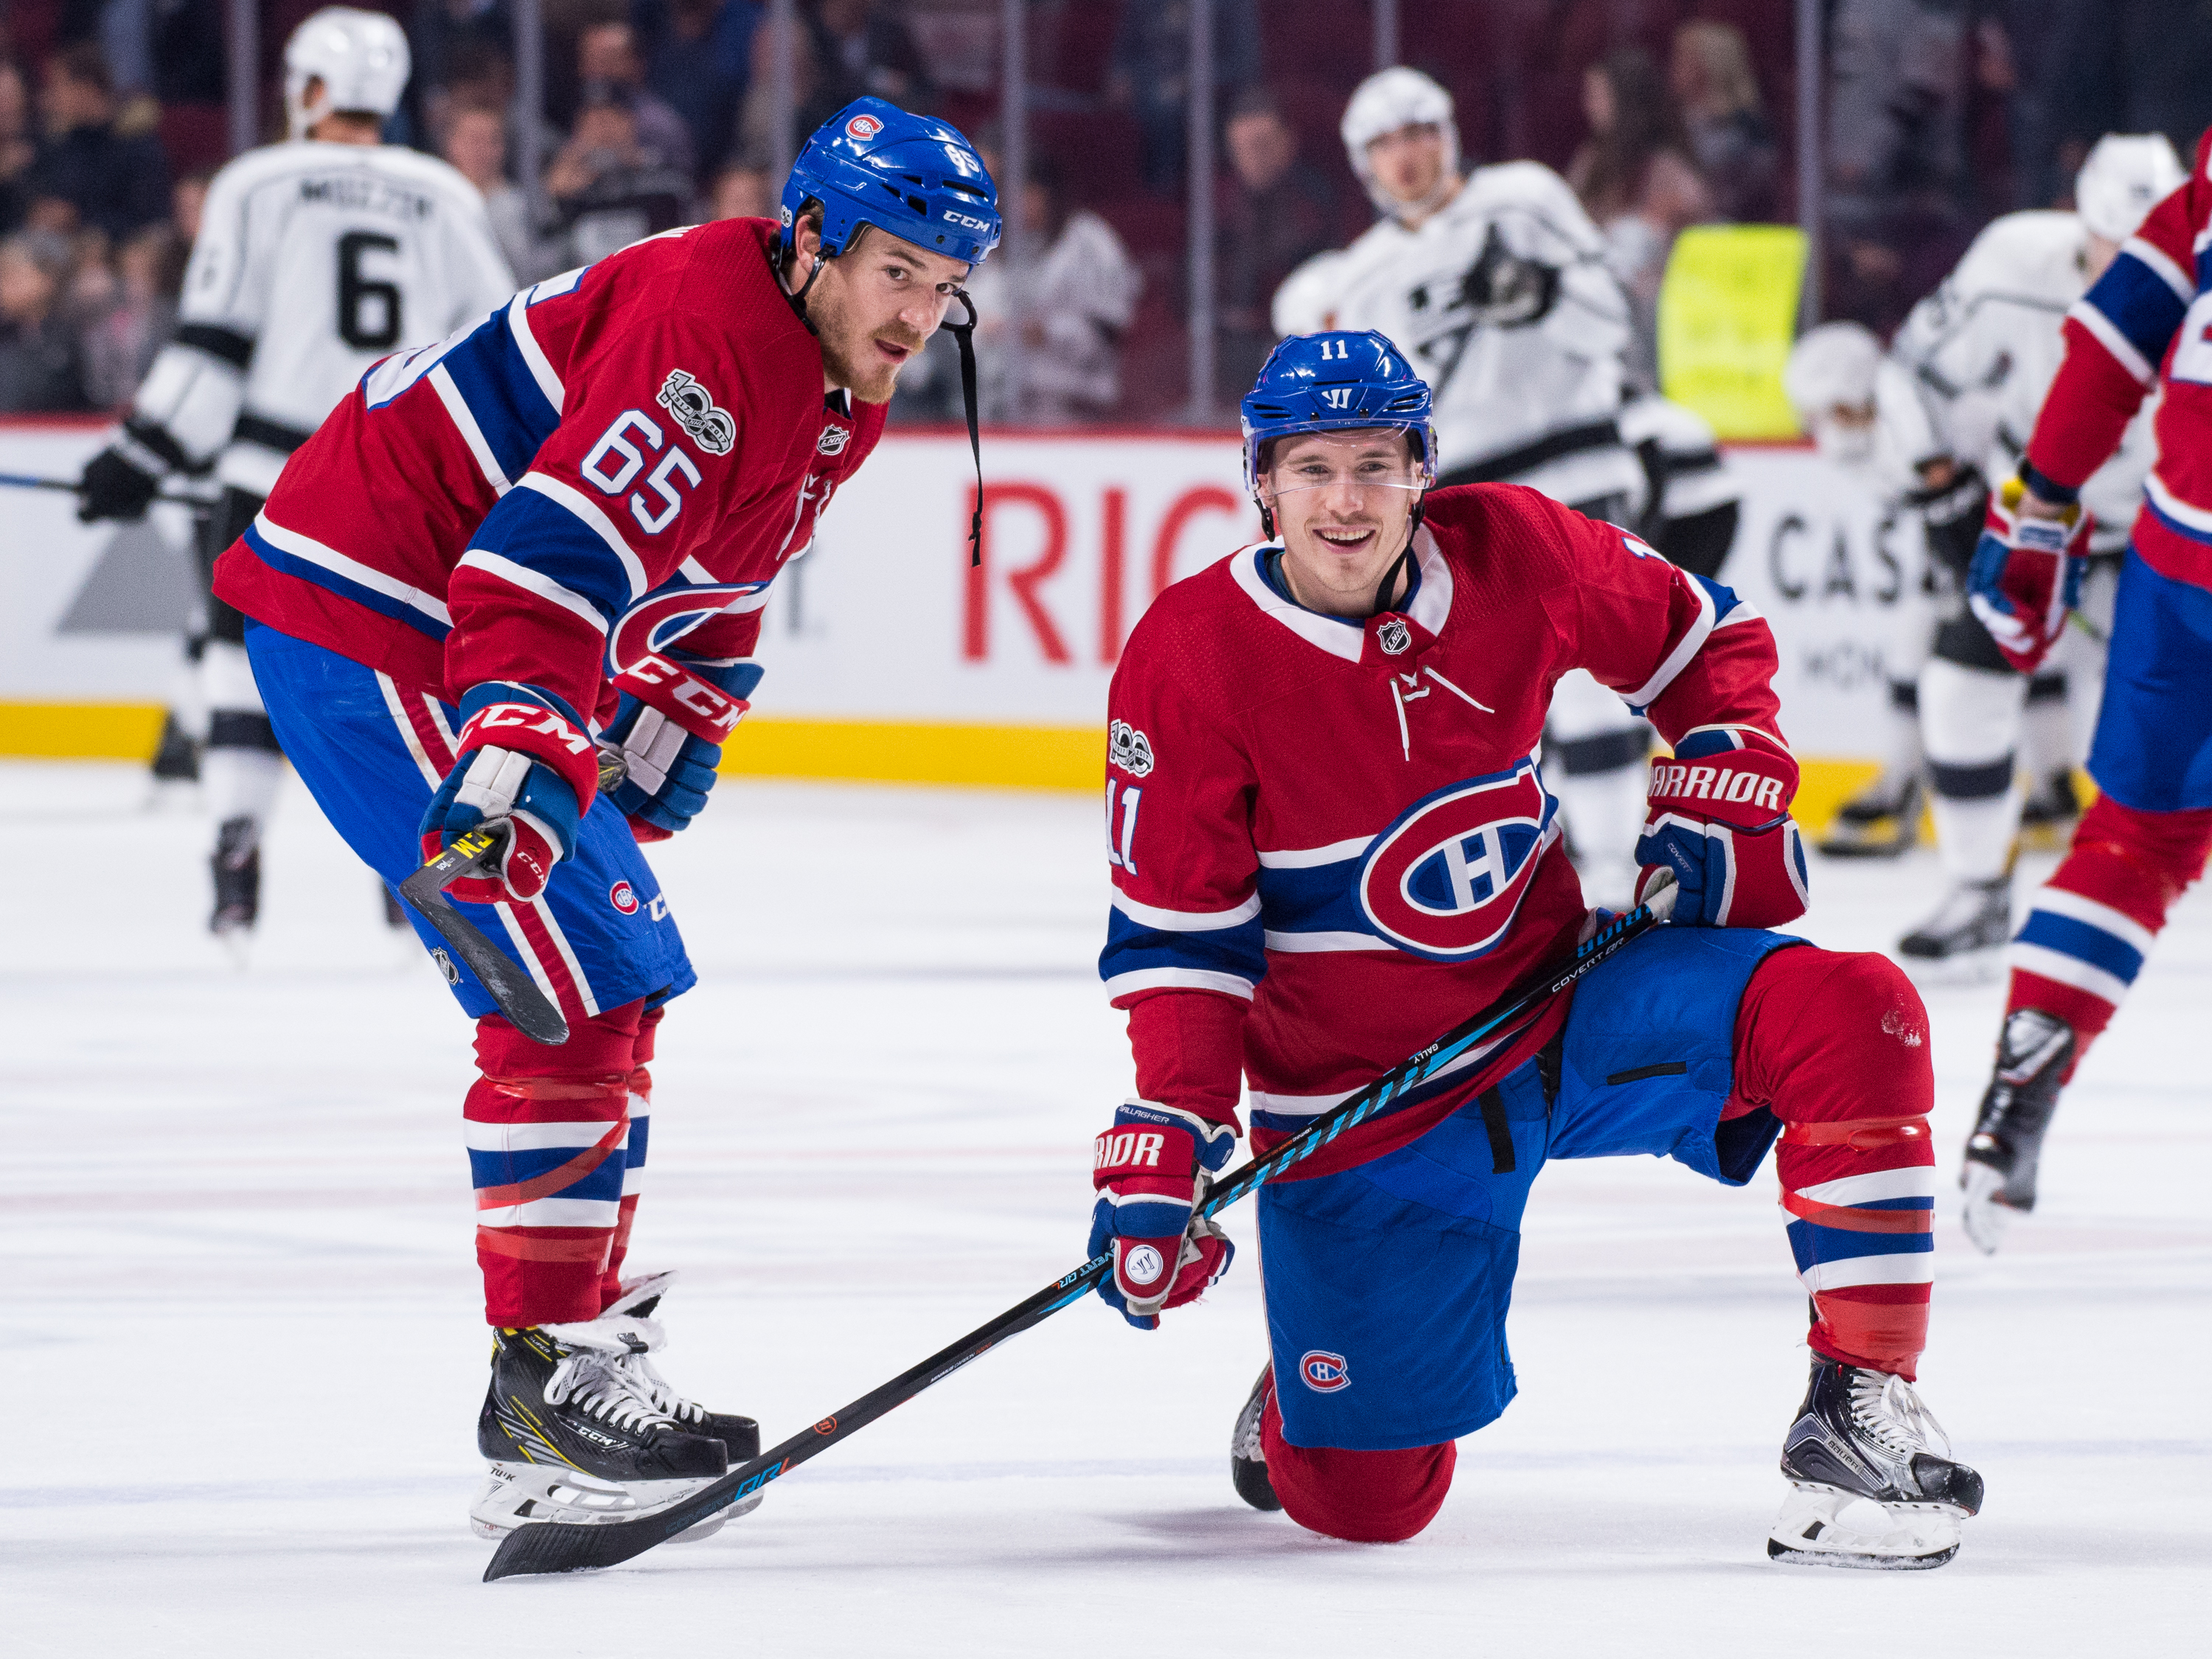 Montreal Canadiens: Gallagher and Shaw Sparking the Habs